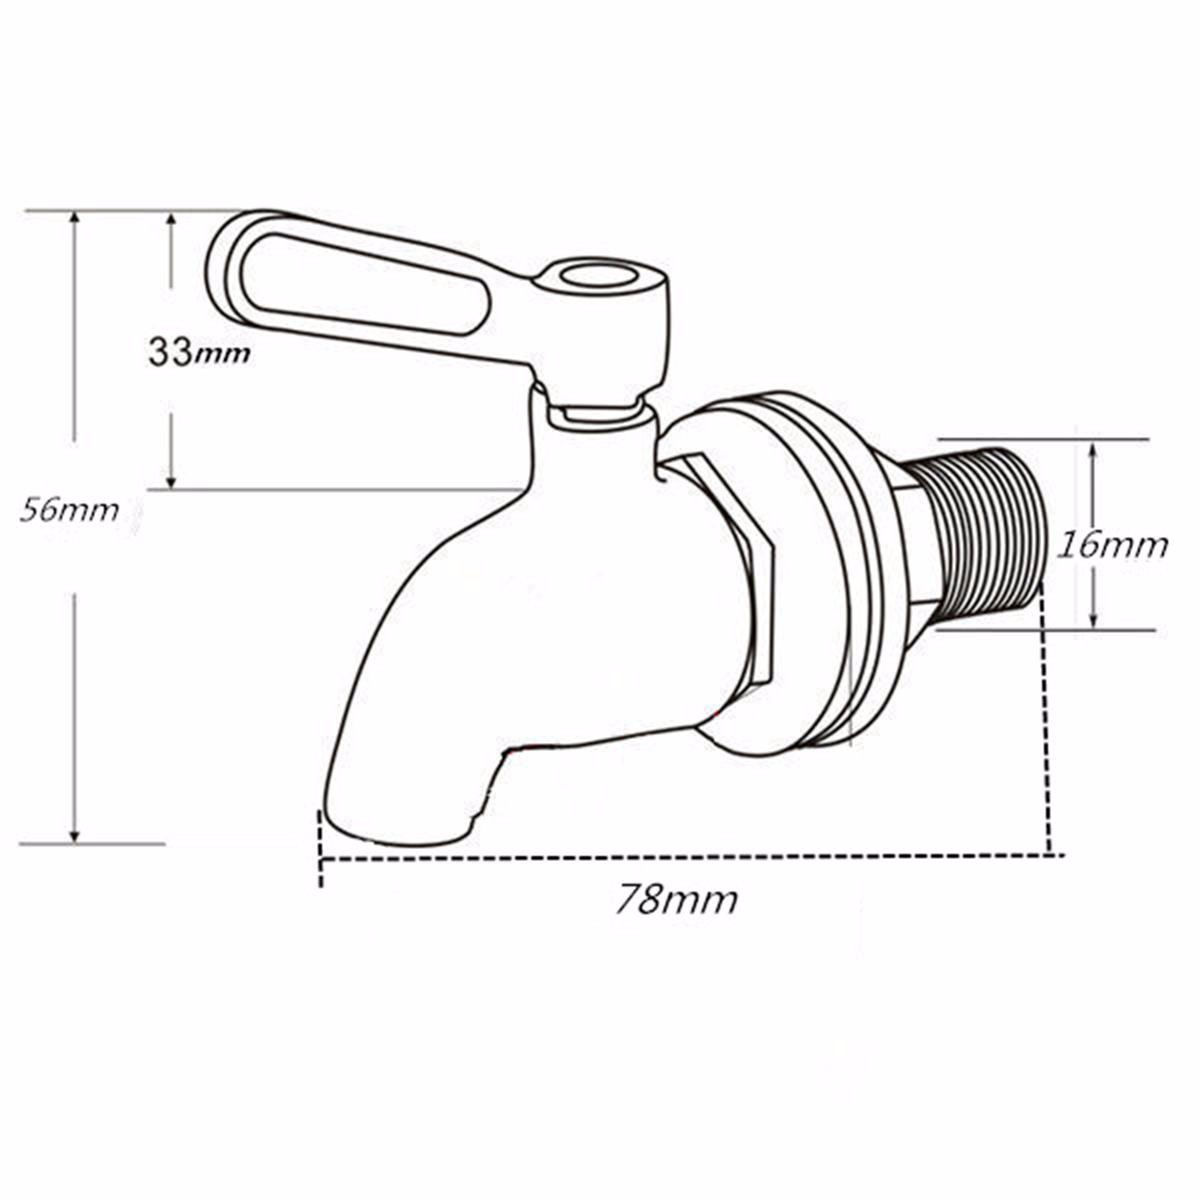 304 Stainless Steel Replacement Spigot/Faucet for Beverage